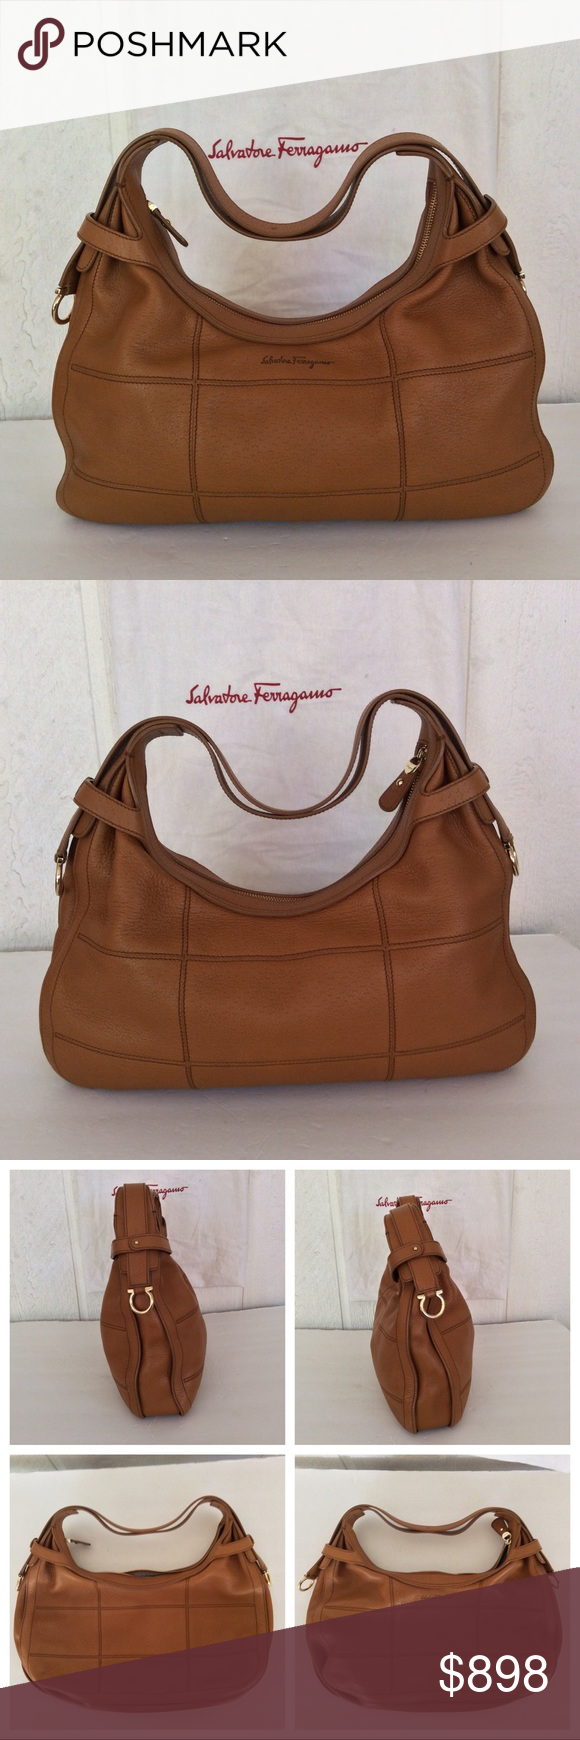 """FERRAGAMO HOBO LEATHER HANDBAG EUC the ultimate in style and sophistication!  This Salvatore Ferragamo leather bag is totally on trend!  Superb Italian craftsmanship. Leather has no flaws, marks or knicks. Gleaming goldtone hardware, full zipper top. Interior fabric has some pen markings. Interior has one zippered accessory pocket and two open slip pockets. Comes with dustbag and receipt. Purchased from the Ferragamo store in Italy. Bag measures approximately 16"""" long main body approx 9"""" high st #zippertop"""